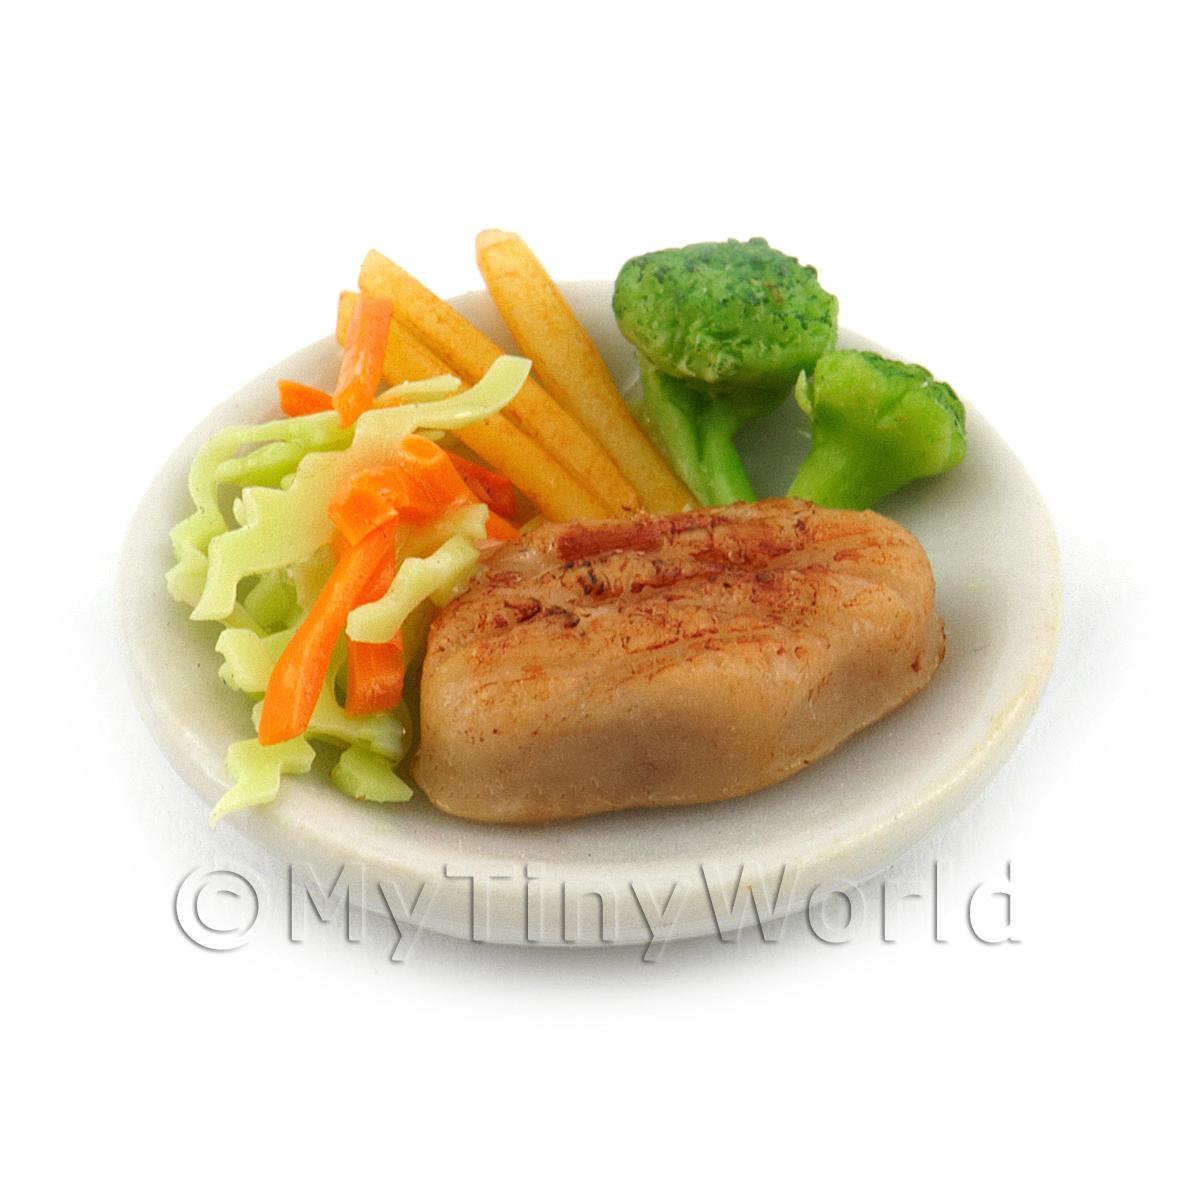 Dolls House Miniature Sirloin Steak on a  White Ceramic Plate With Vegetables